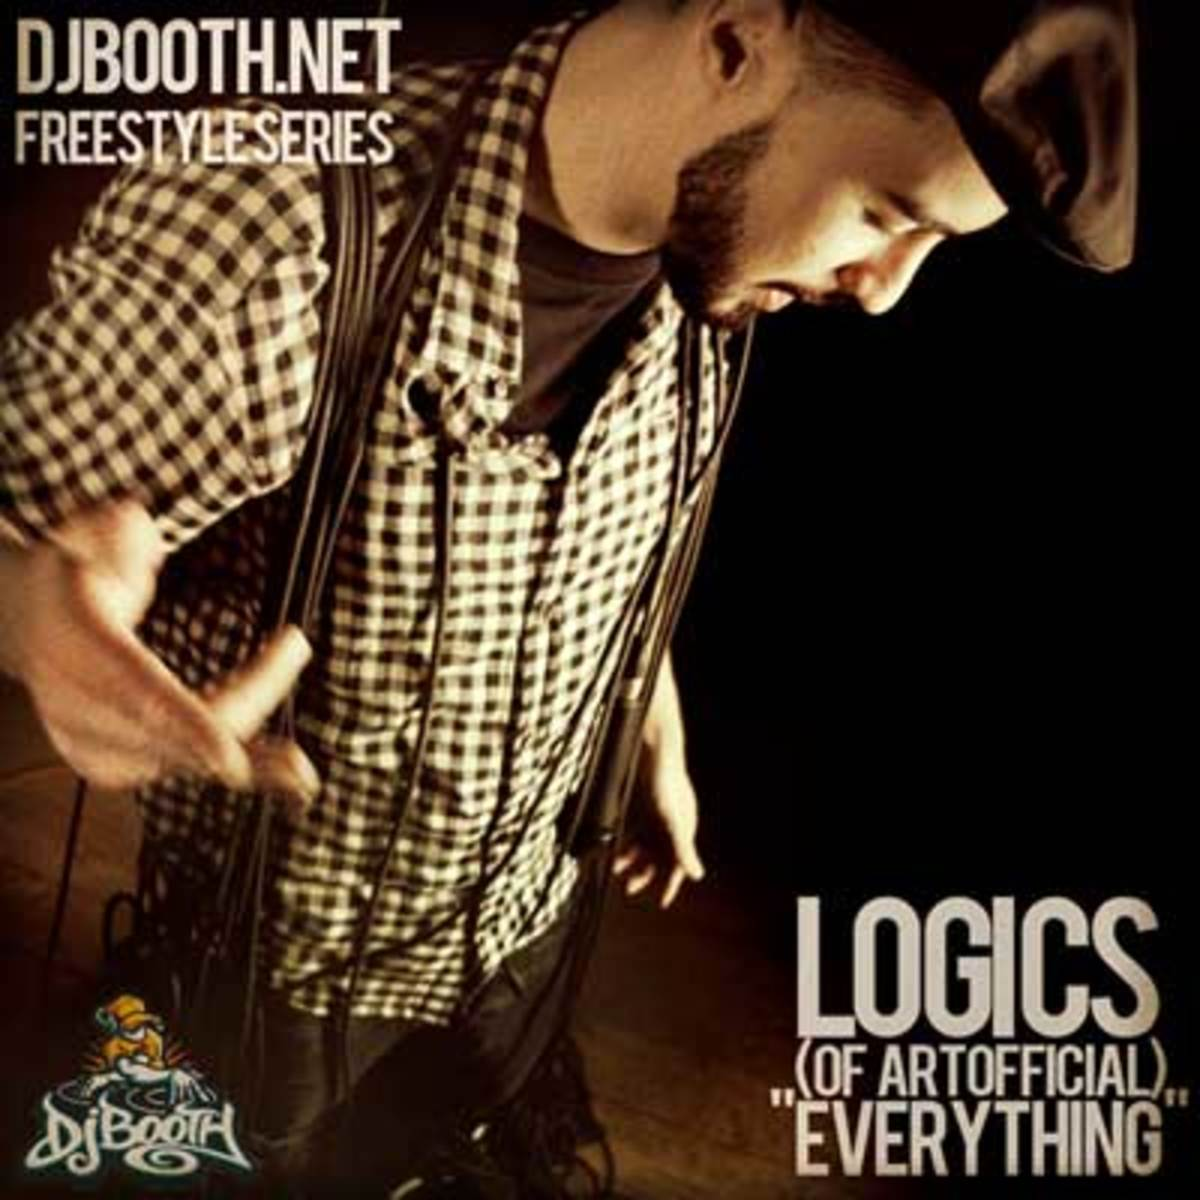 logics-freestyle.jpg